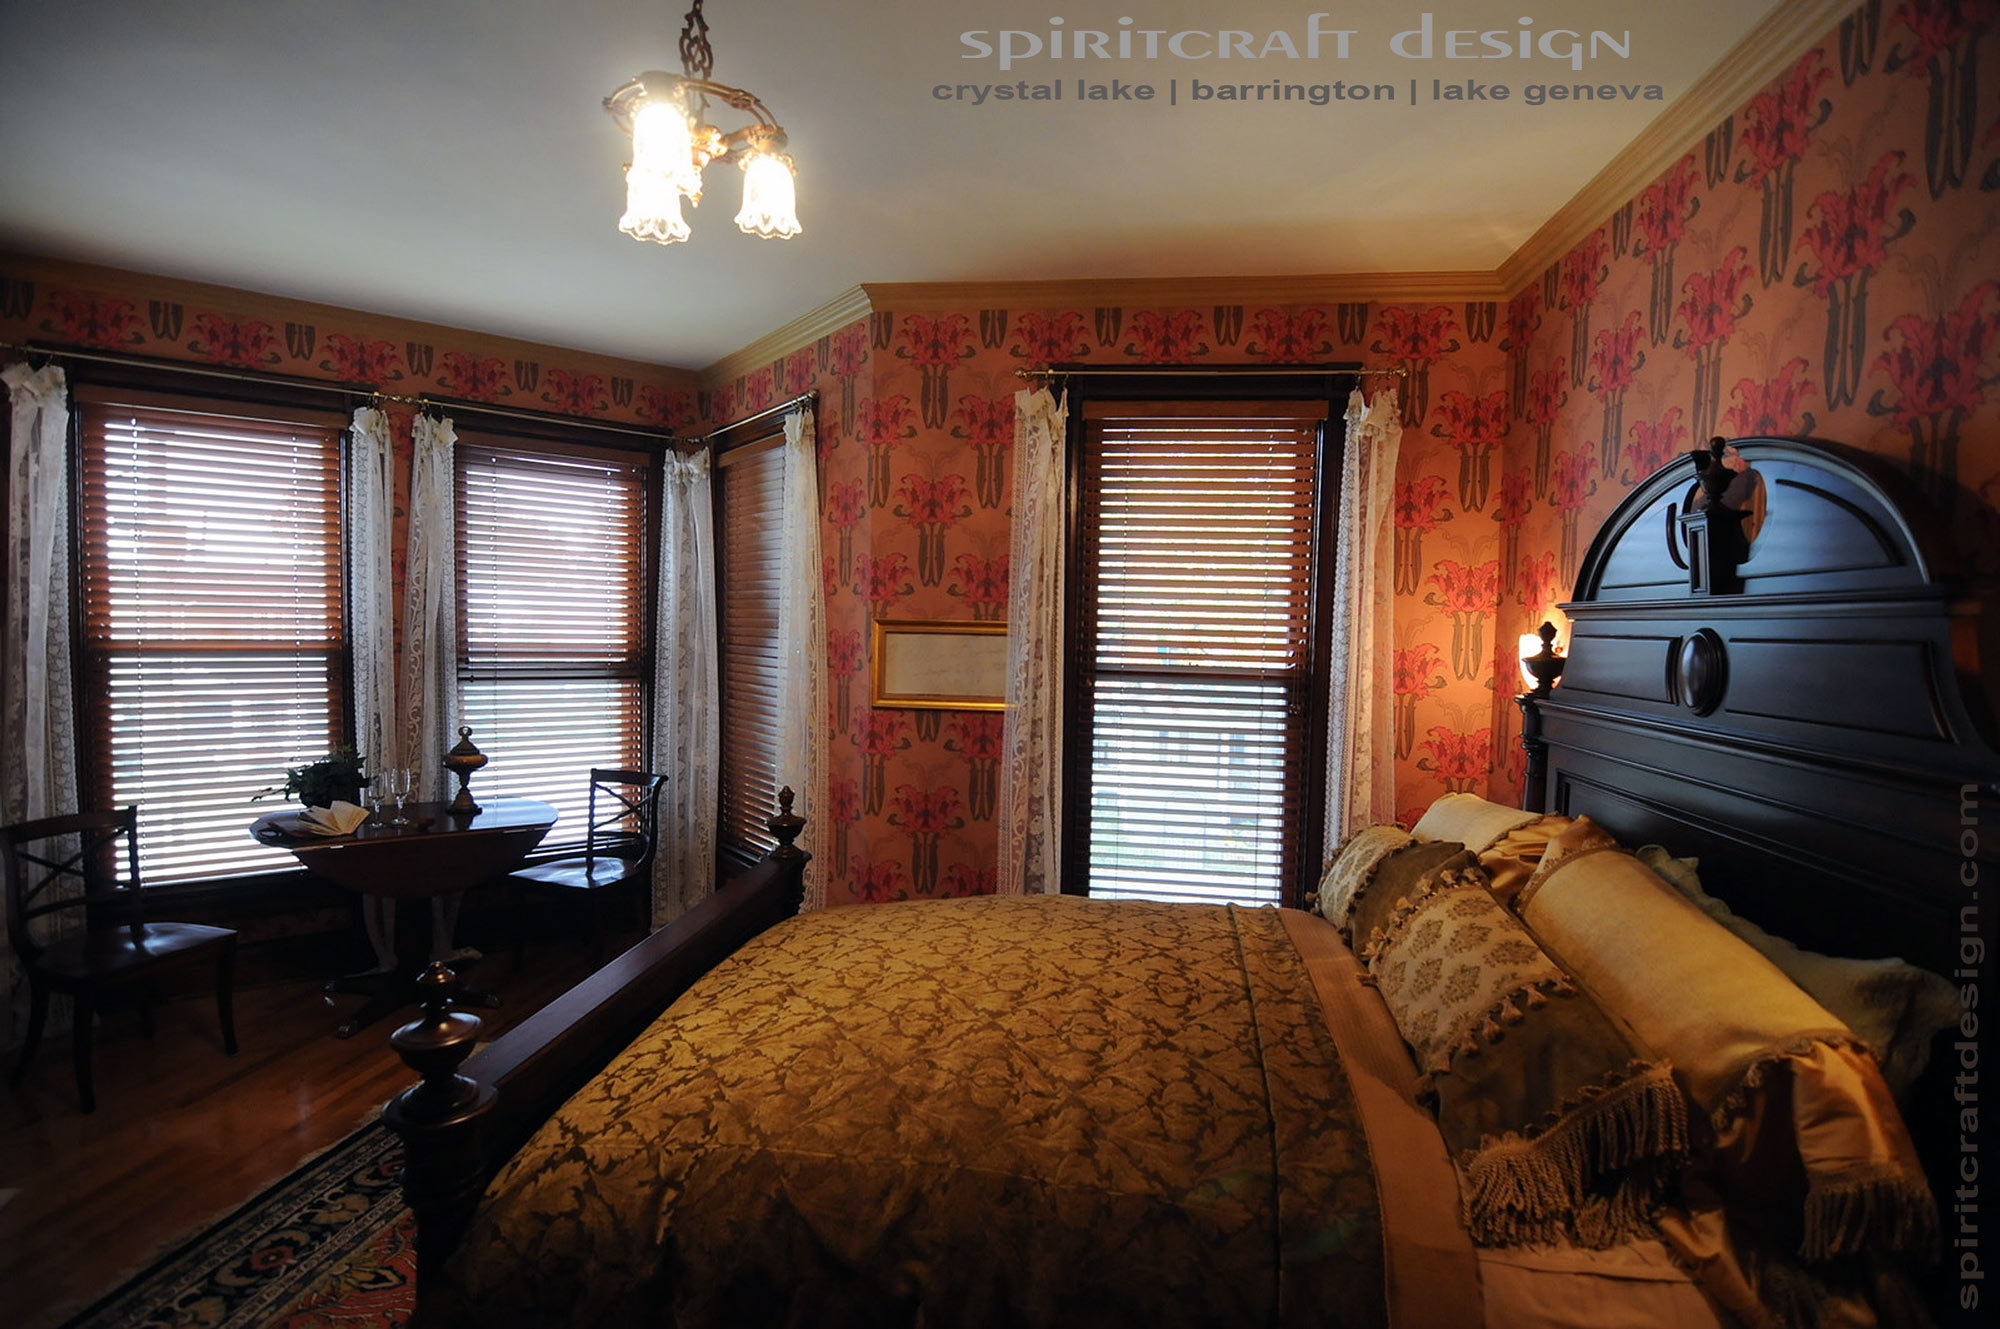 Custom Interior Design decorative pillows, custom bedding in barrington, crystal lake, il